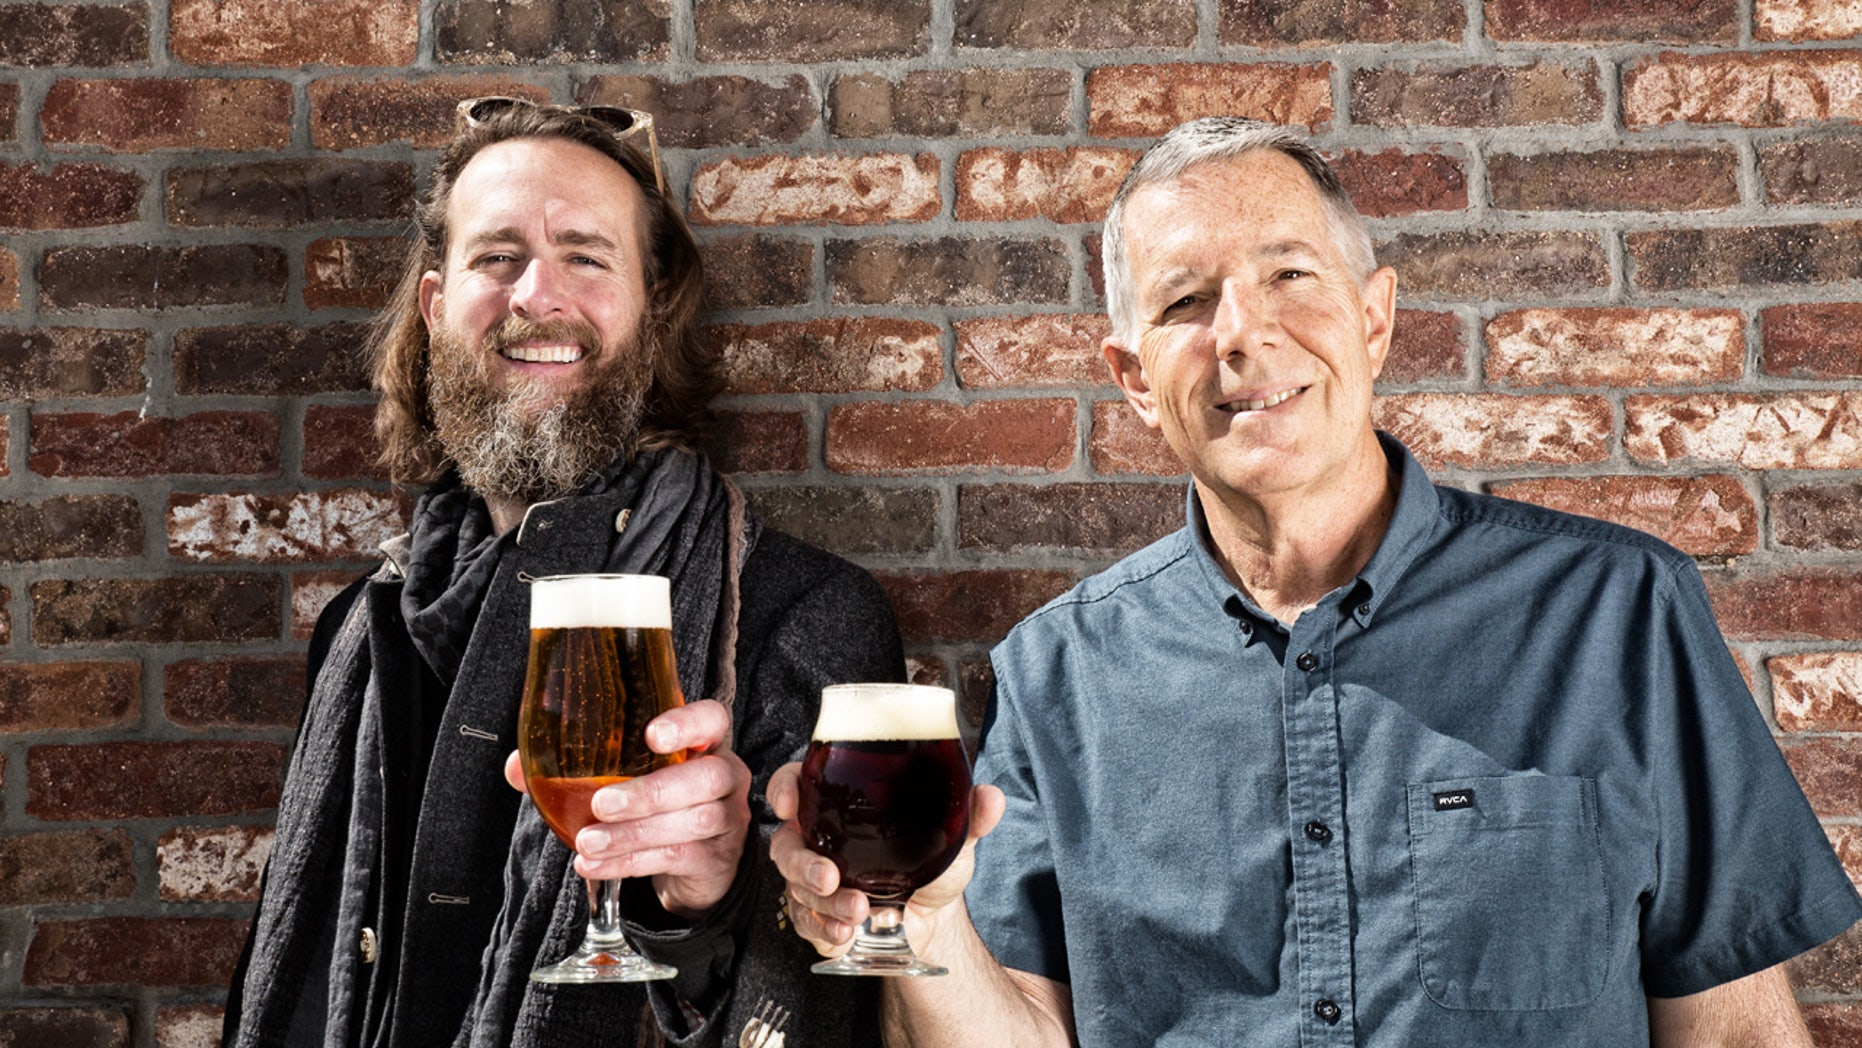 Cheers: Stone co-founders celebrate 20 years in business with ambitious plans for future growth.